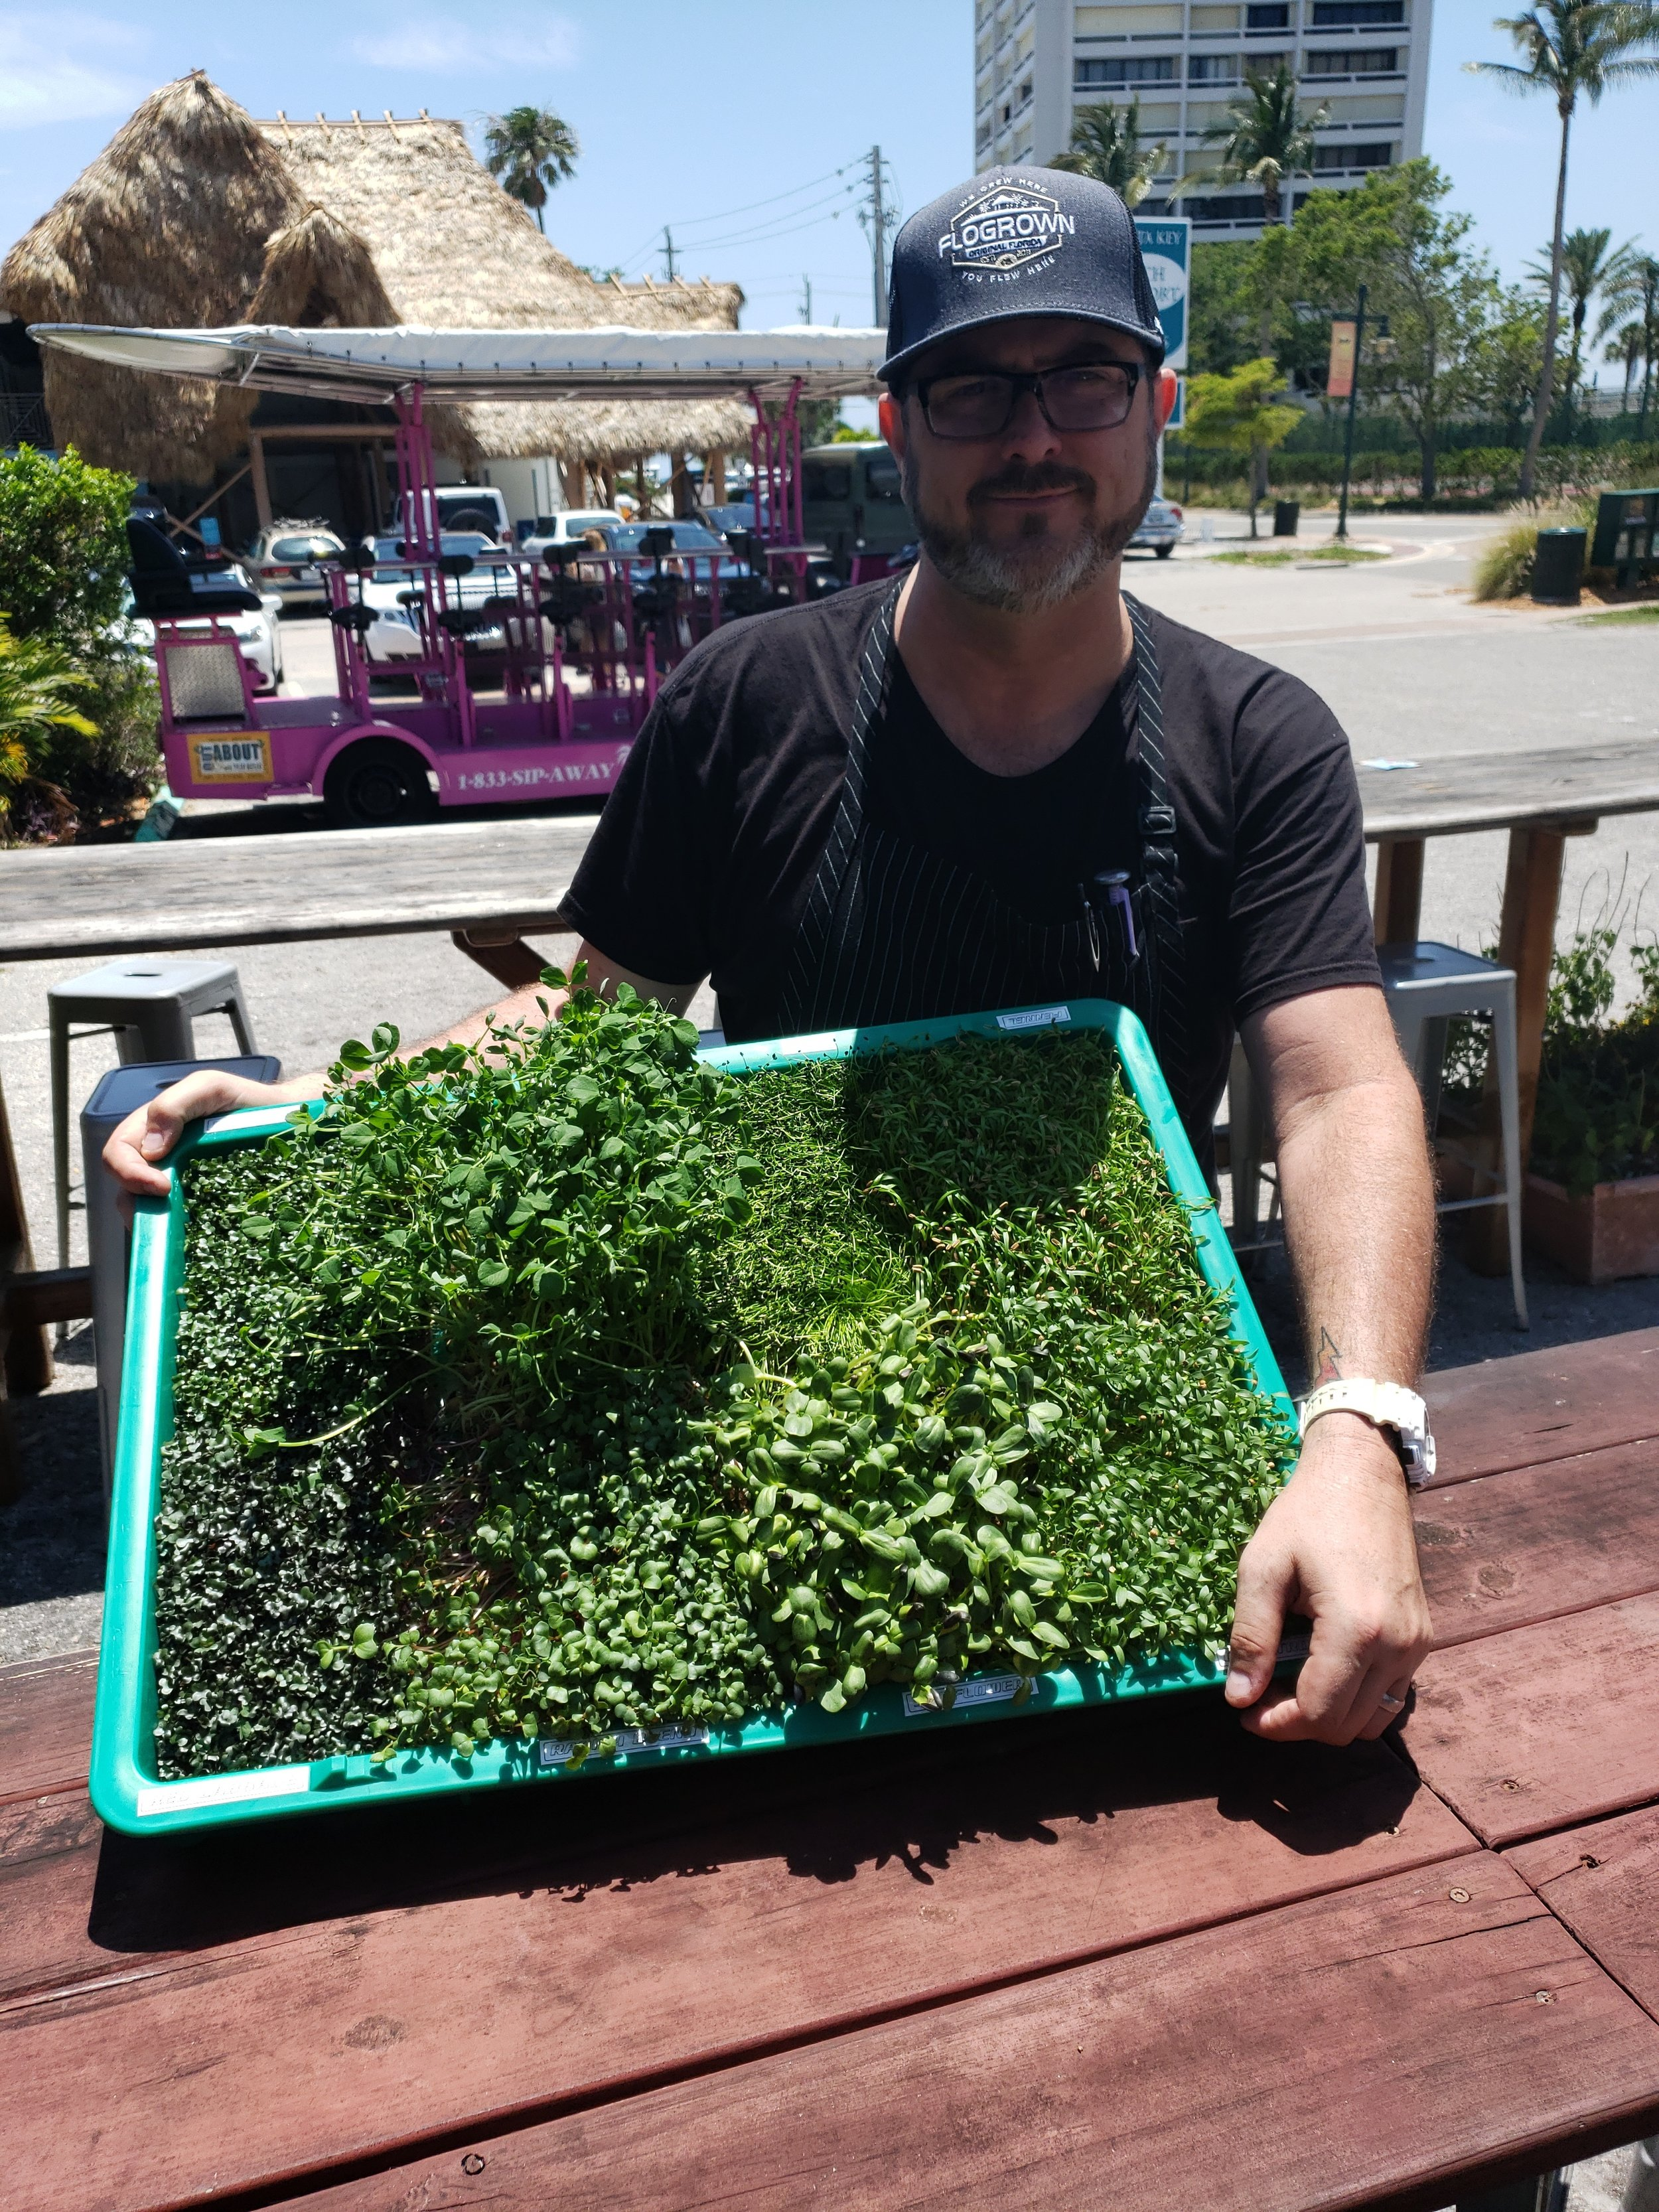 Chef Chip with our self sustainable, NON GMO, locally grown , hydroponic herbs!